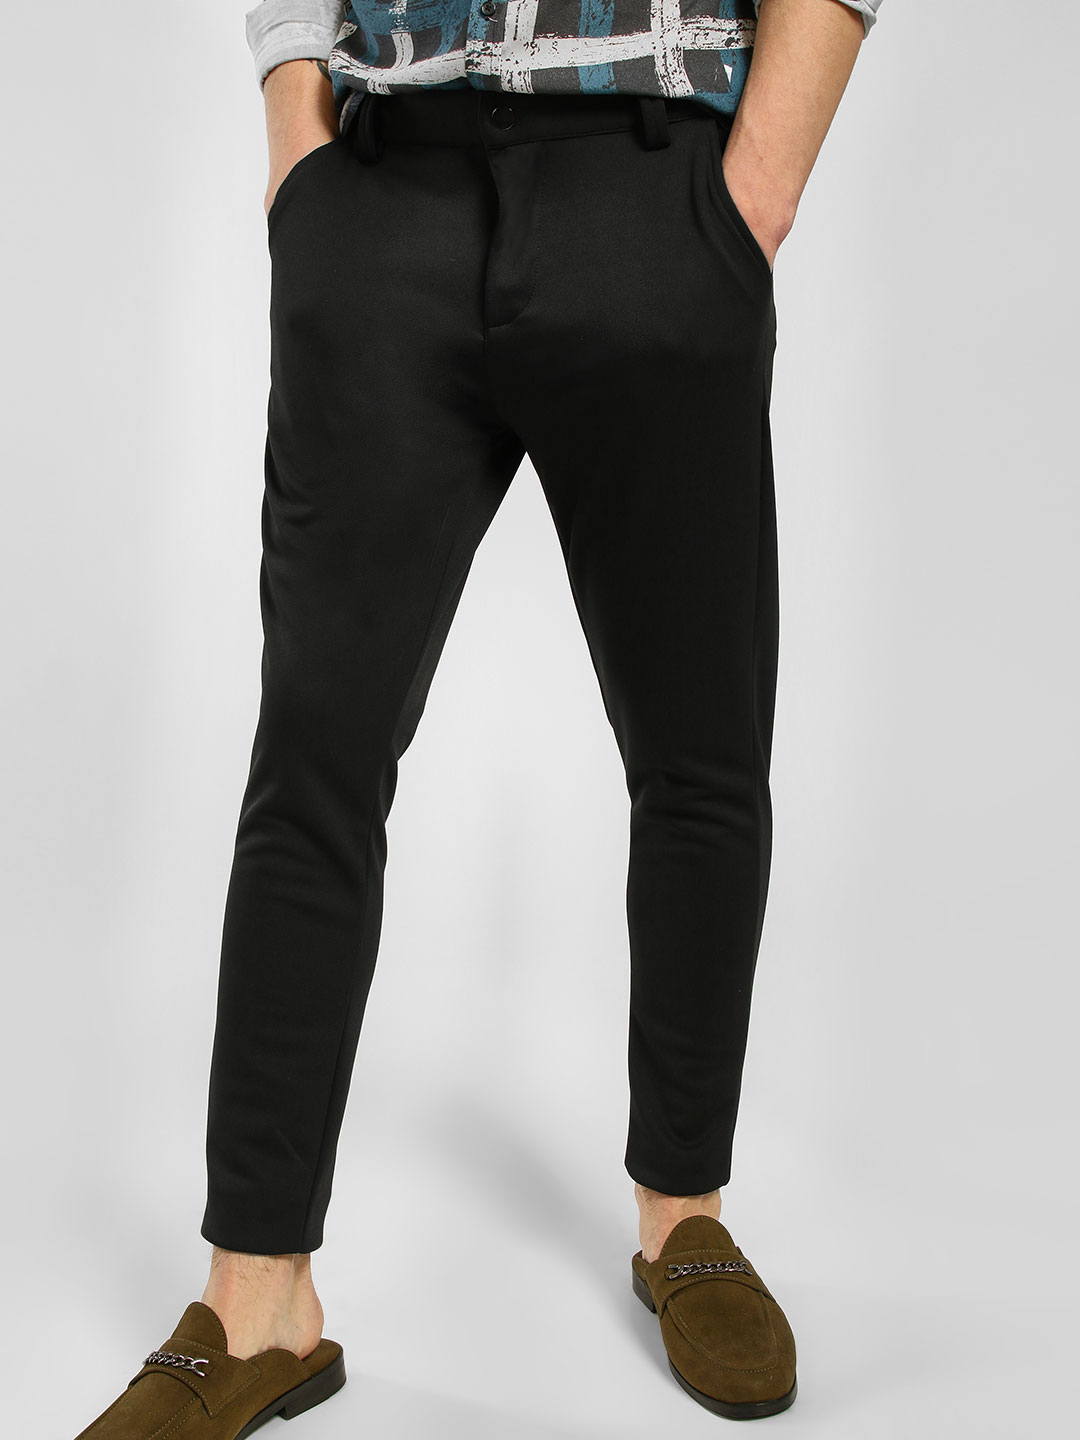 KOOVS Black Knitted Skinny Fit Trousers 1